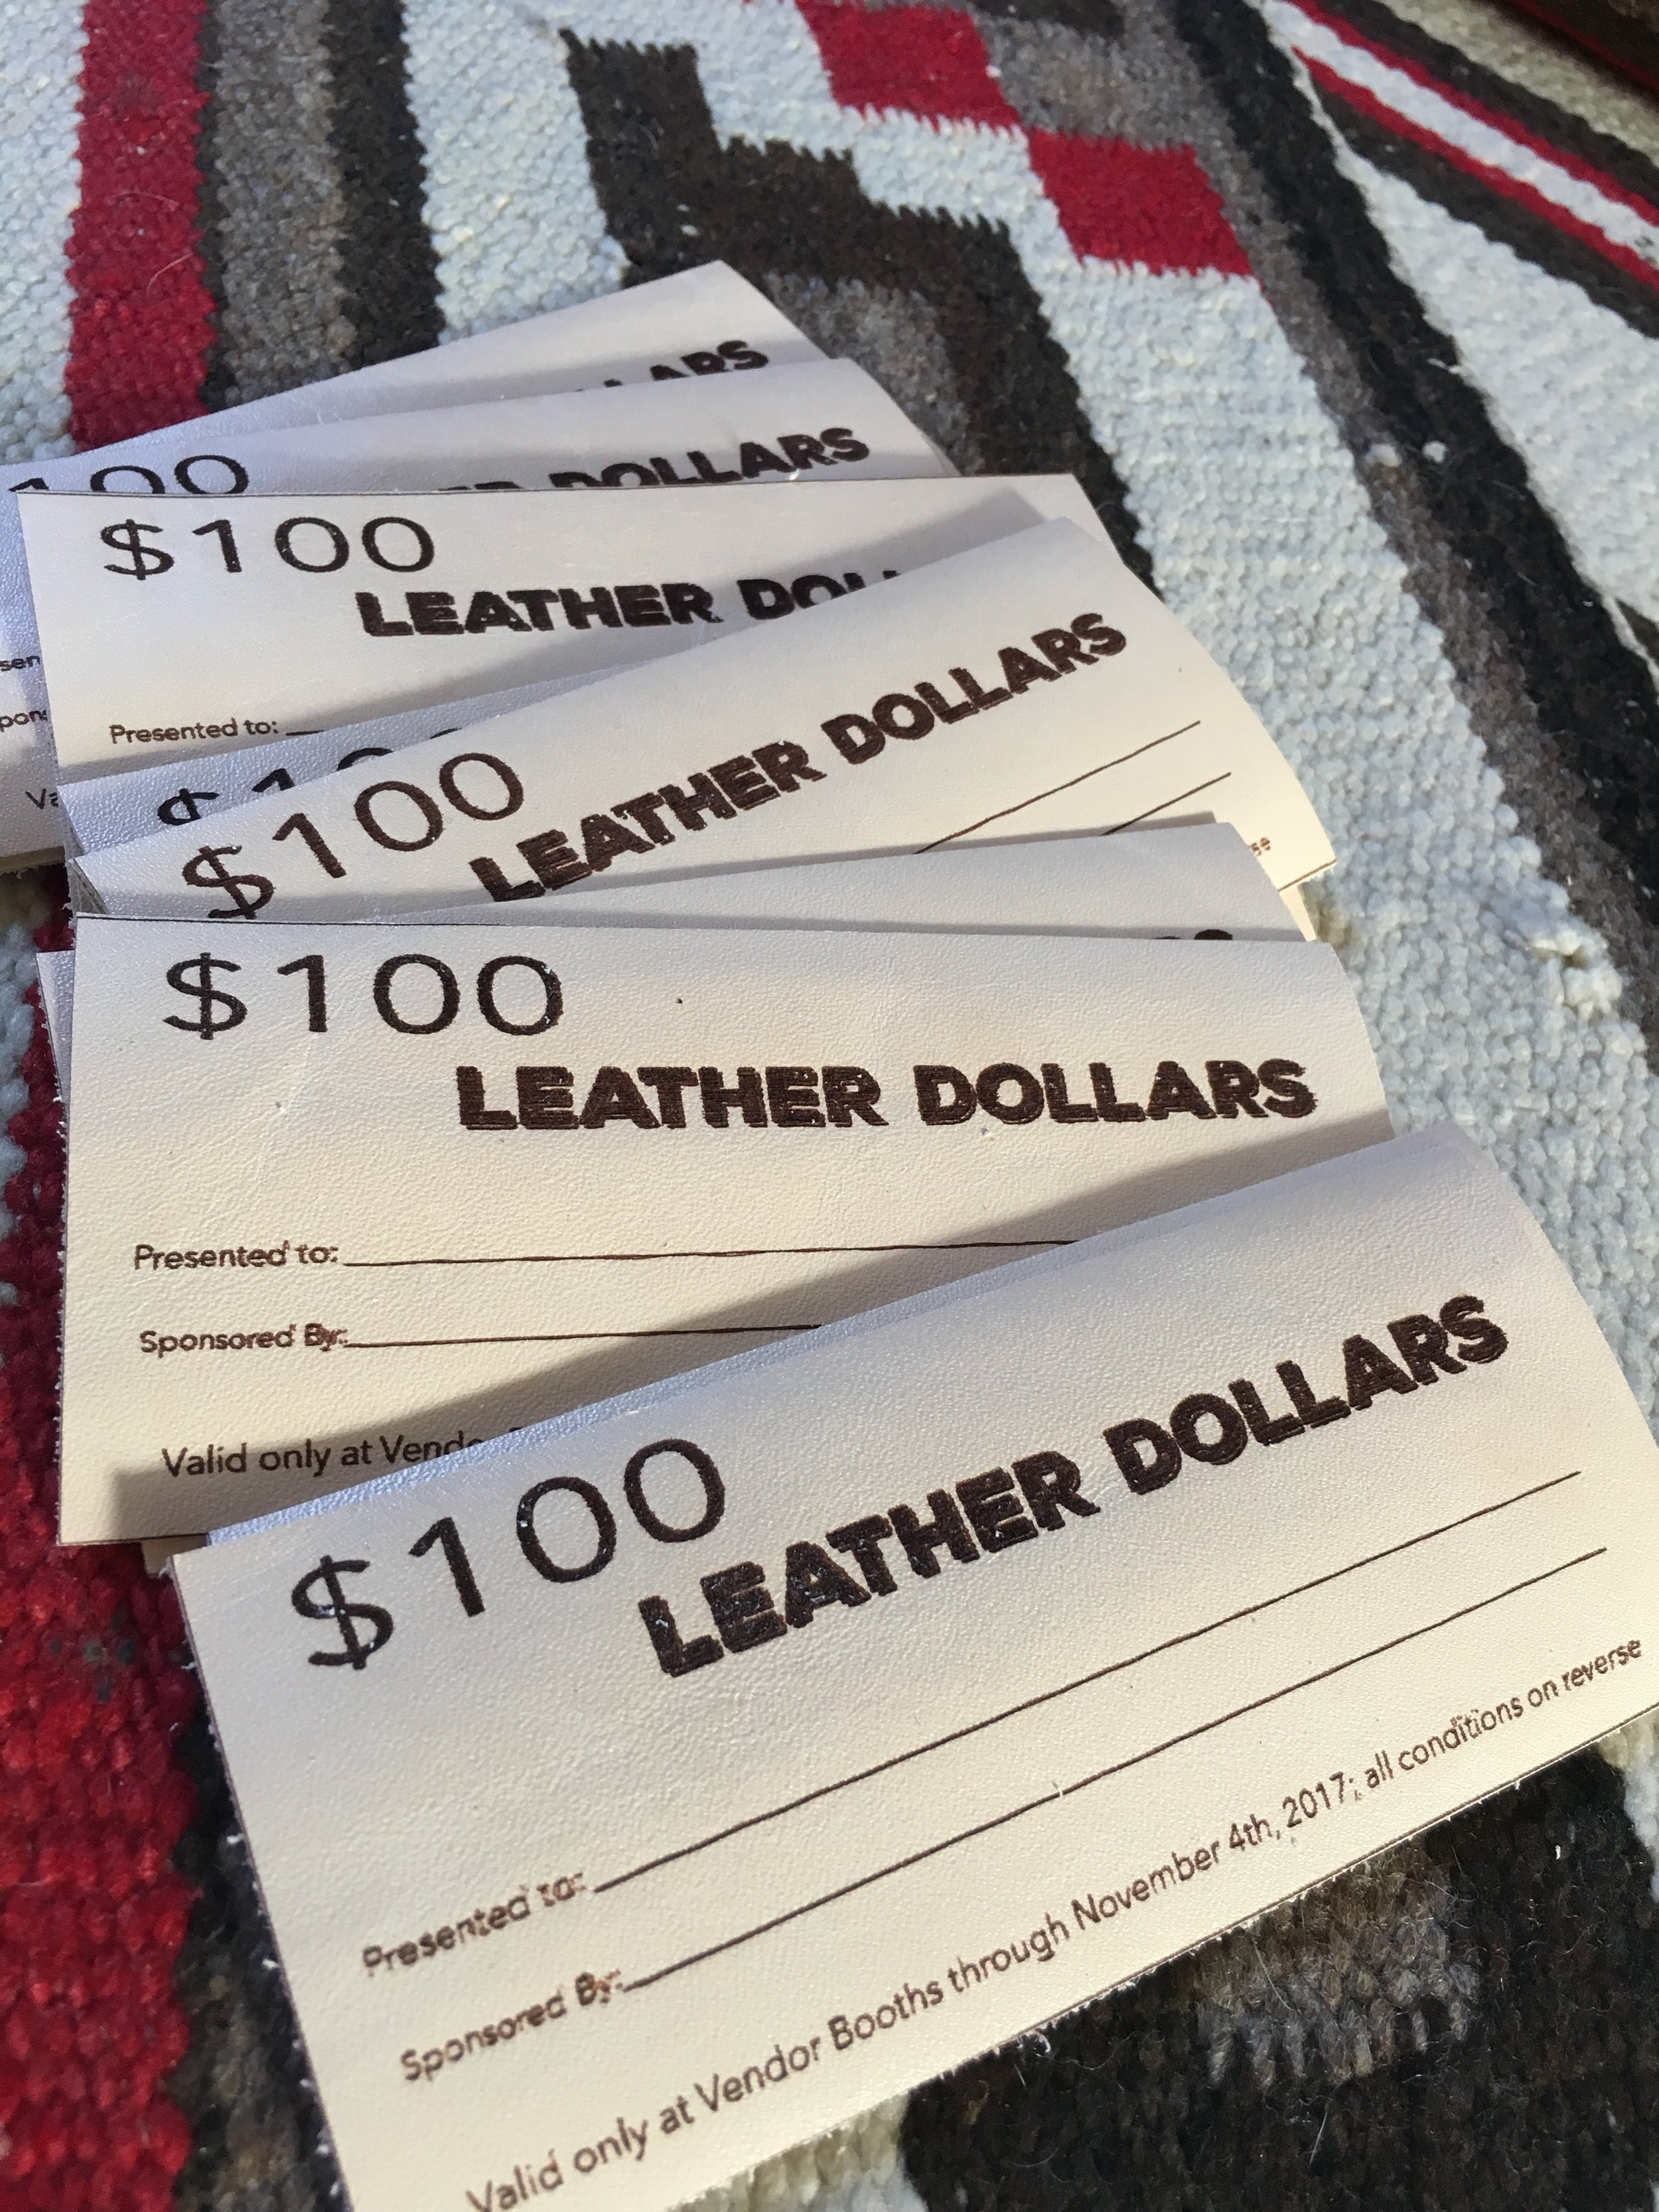 What are LEATHER BUCKS? - A $100 award drawn from registered attendees, students & contestants; we will give away $1000 throughout the weekend!It spends just like cash at all vendor booths during the show, Nov 1 & 2, 2019!RULES: You must be present to win; winner will have 1 hour from when the number is announced/posted to collect the prize. Attendees will pickup a LEATHER BUCKS NUMBER which is the way we will select winners, and if you are attending both days of the show you are welcome pick up a second number on Saturday, November 2.Winning numbers will be announced frequently at the Show, displayed on the screens at the Convention Center, and posted to social media stories. Attendees will have to watch & listen for their number to be called!Pre-register Online now through Oct 31 for the BEST way to enter: